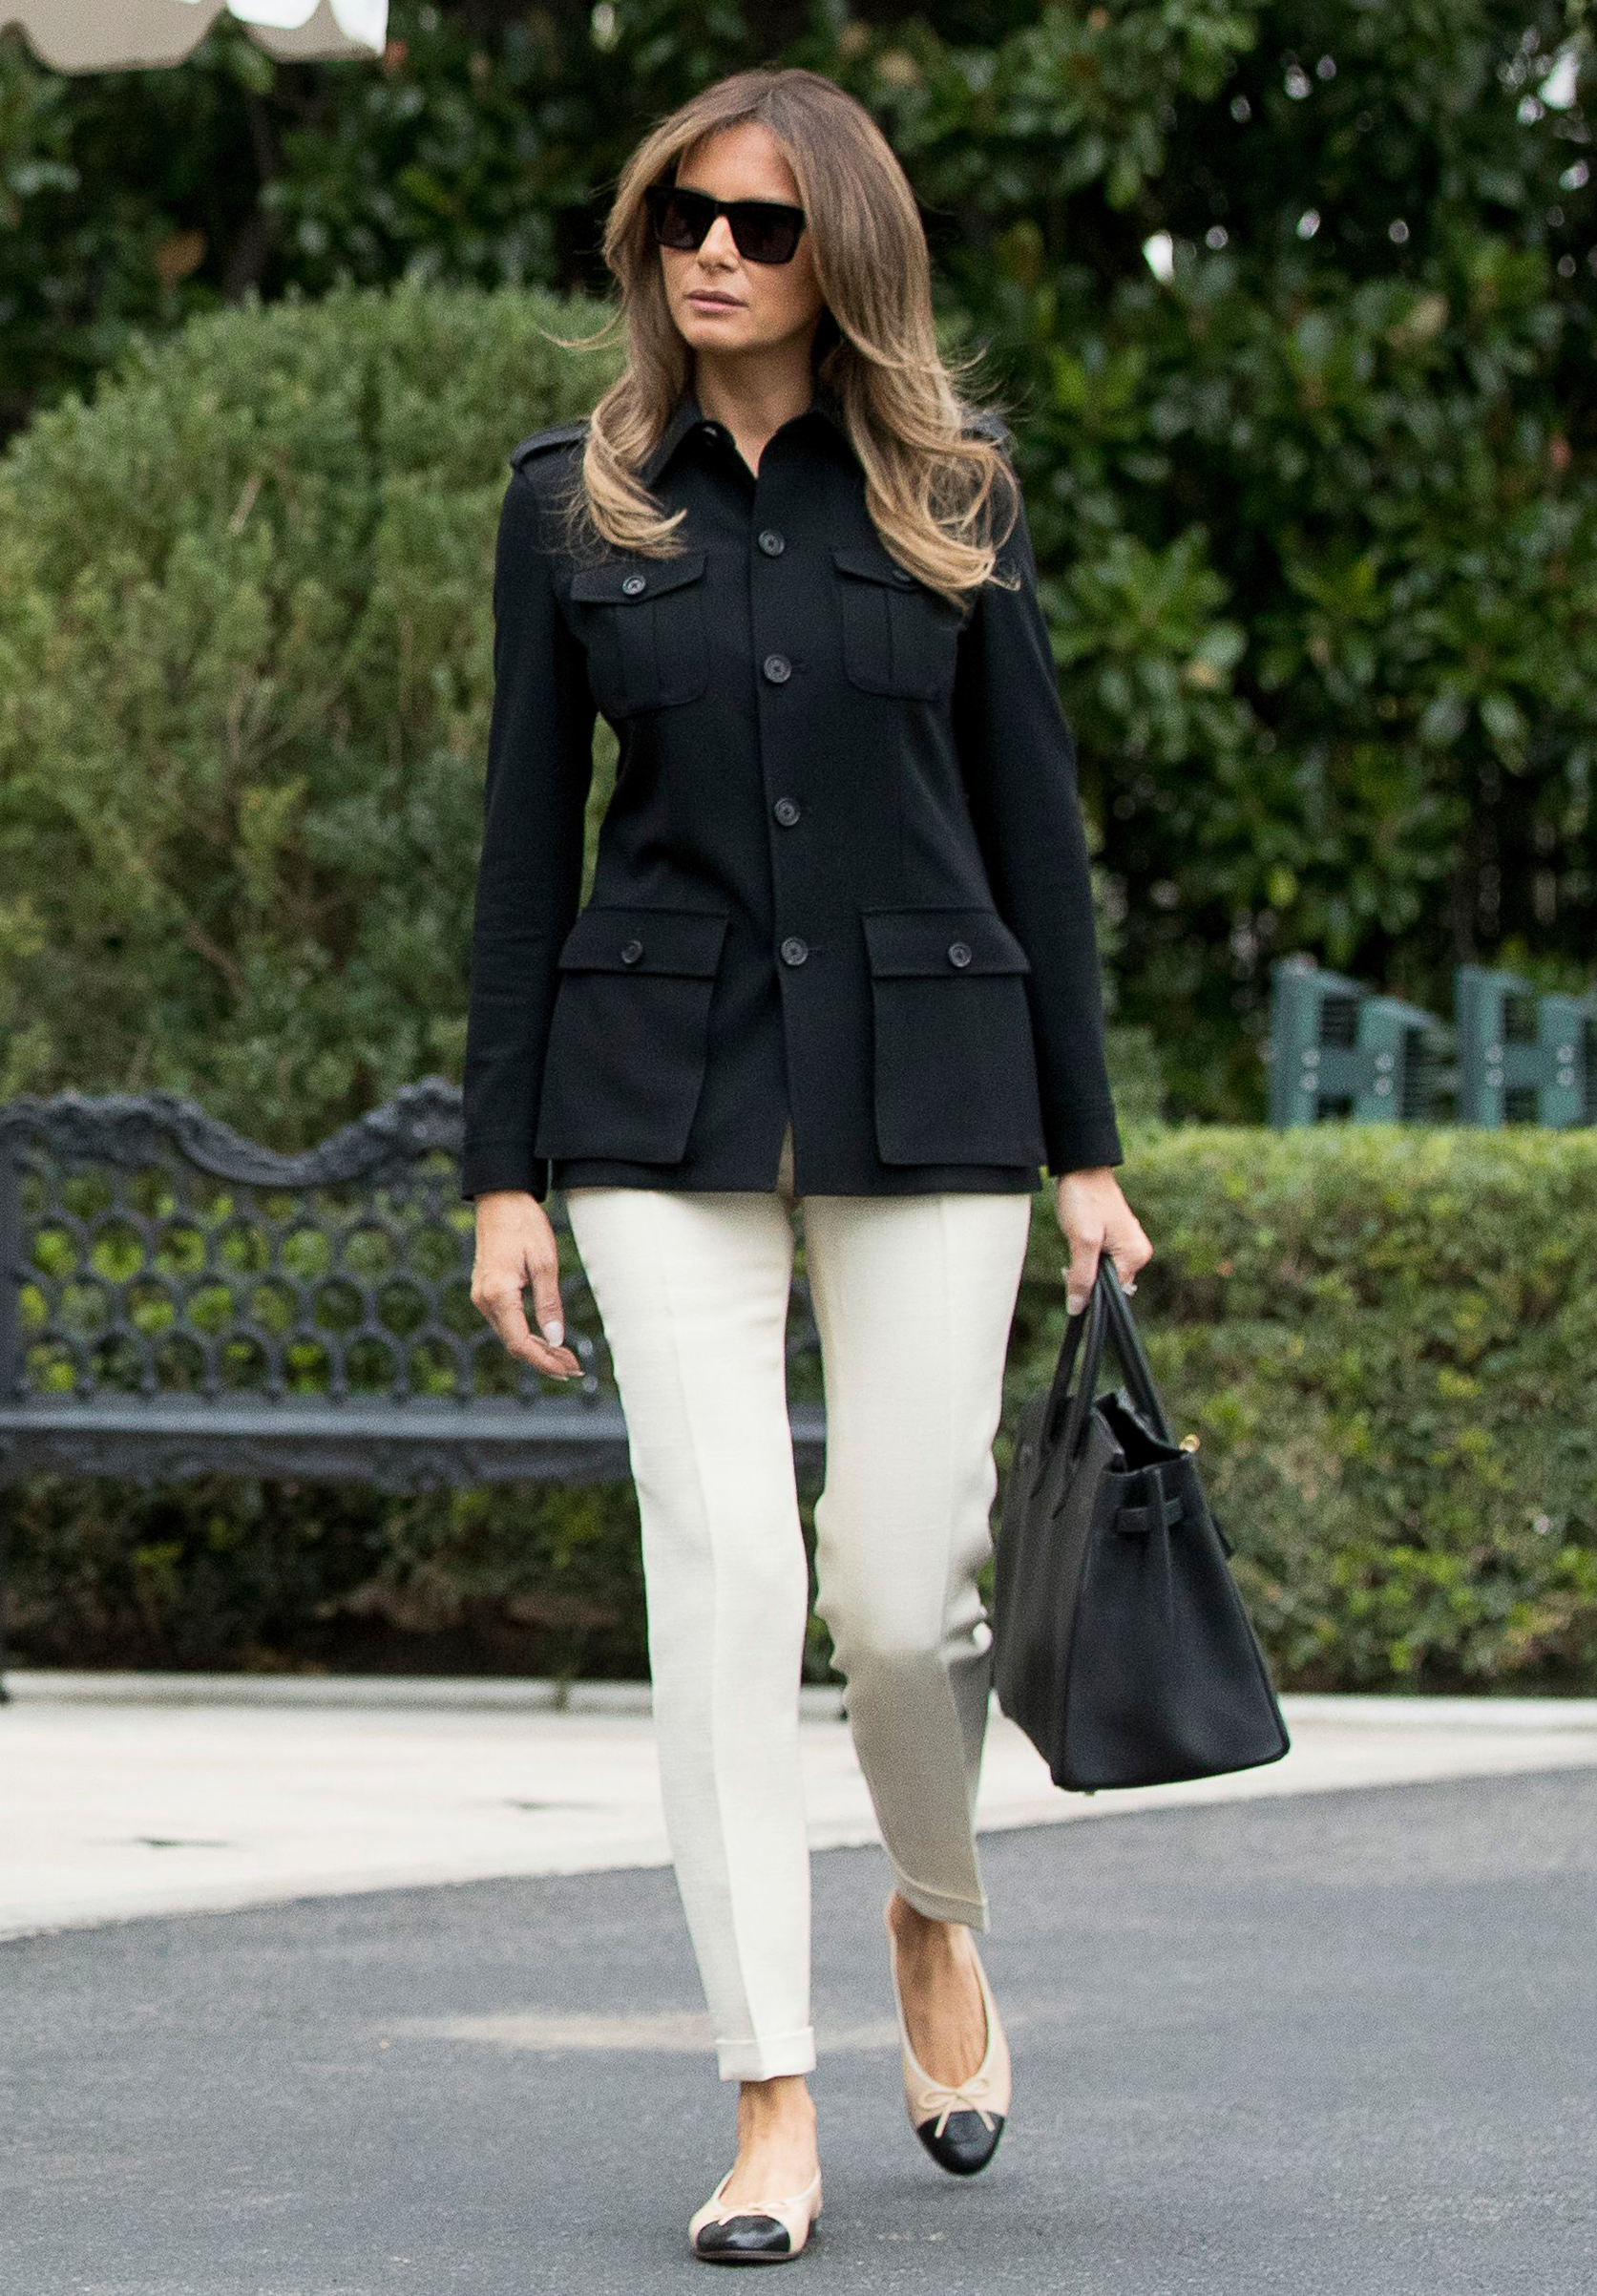 First lady Melania Trump, wearing Chanel shoes and carrying a Hermès bag on way to board Marine One on route to Fort Myers, Fla., to meet with citizens impacted by Hurricane Irma, Washington, D.C., Sept. 14, 2017.